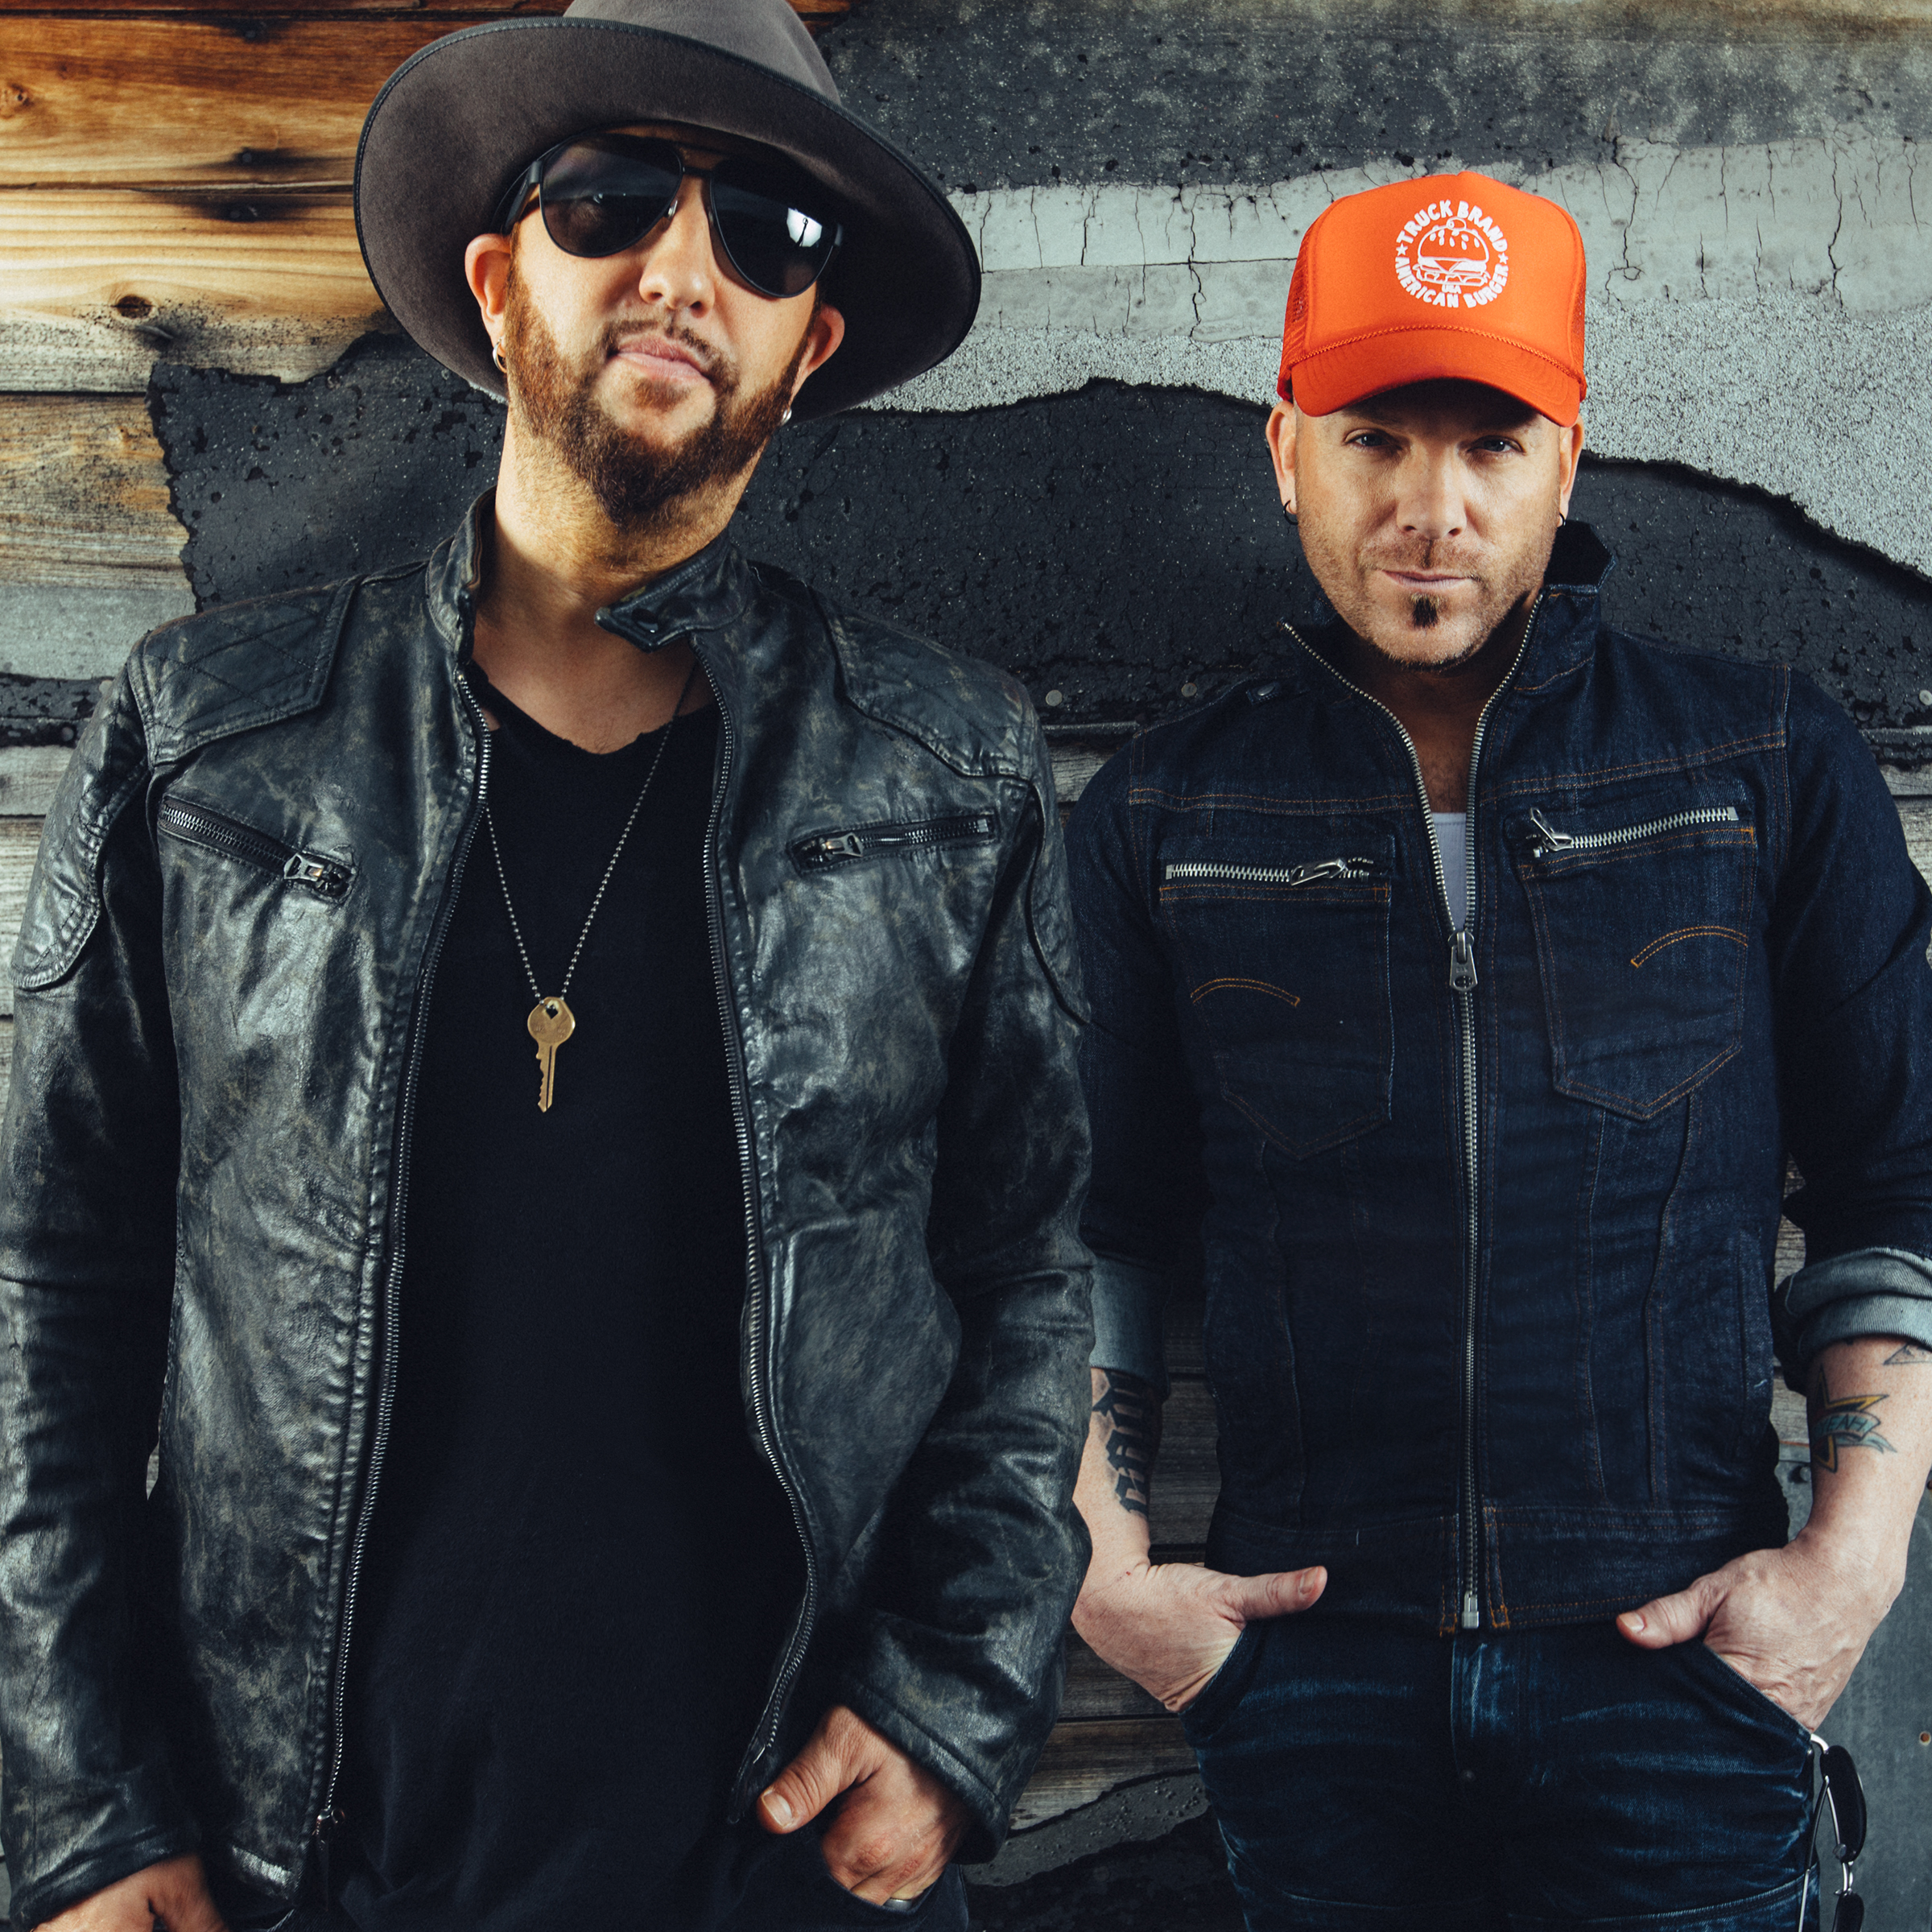 Red hot duo LOCASH join Tim McGraw and Faith Hill's Soul2Soul Tour this weekend